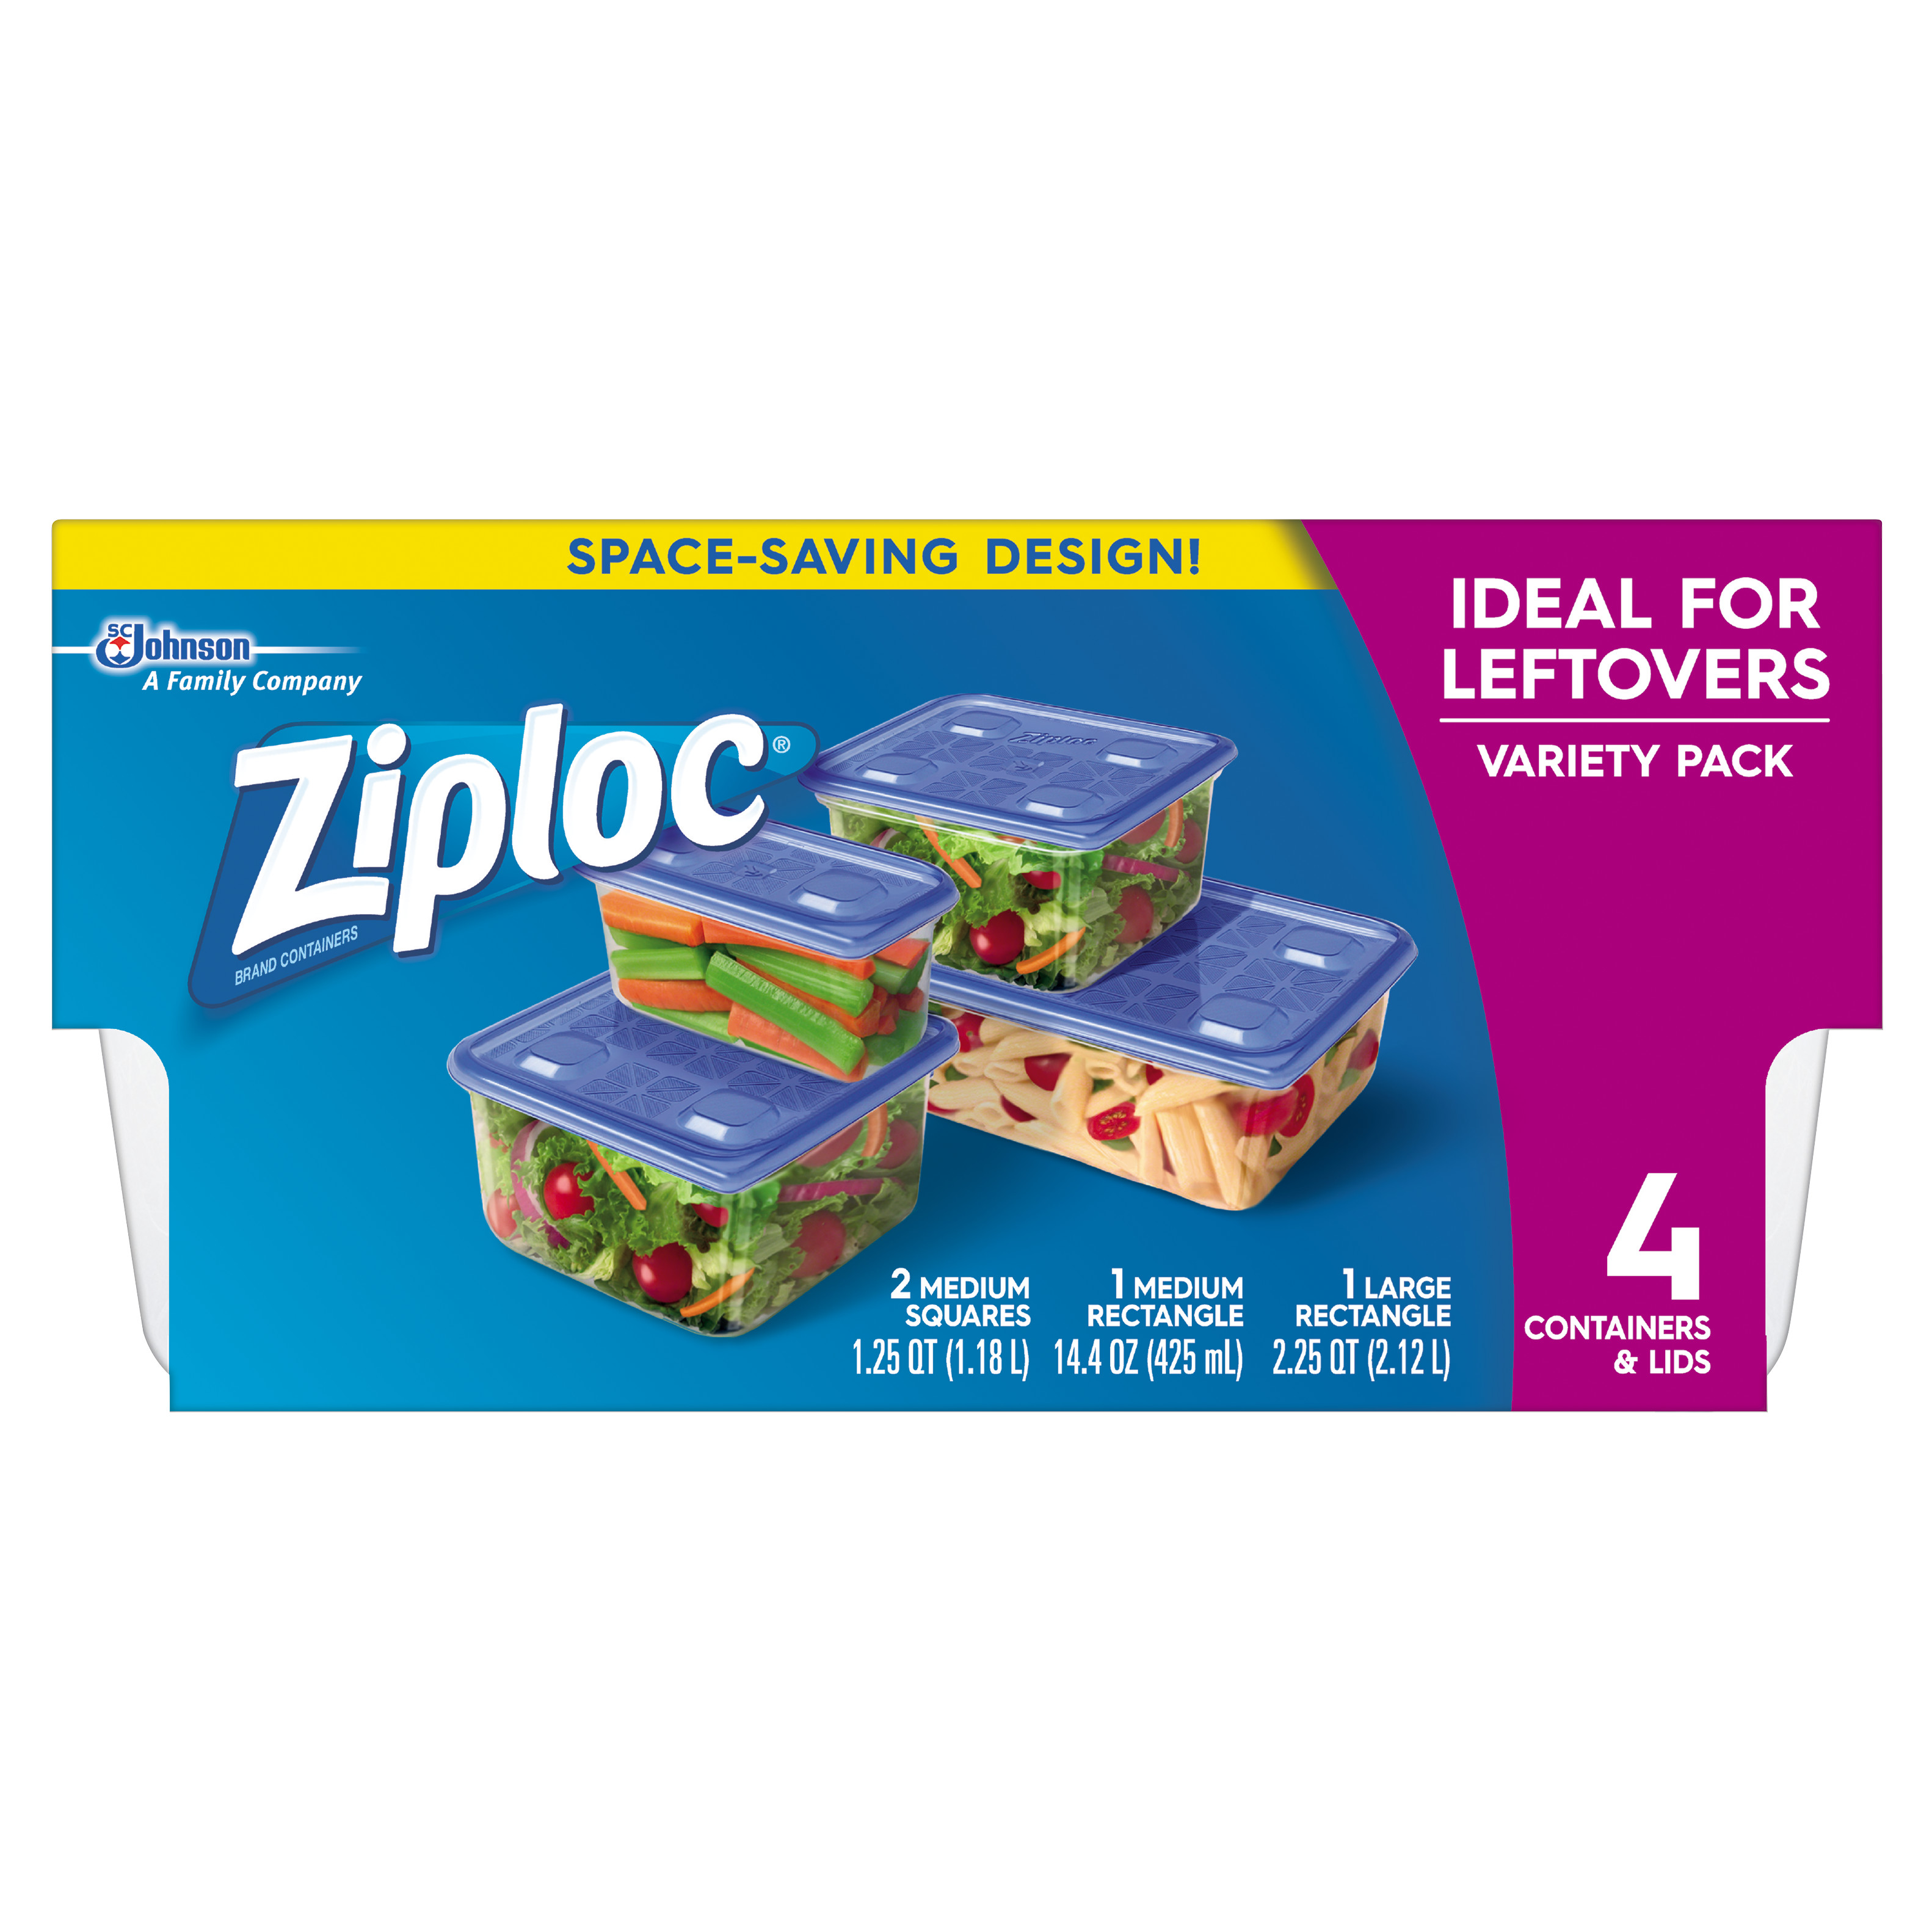 Ziploc Containers Leftovers Variety Pack 4 count